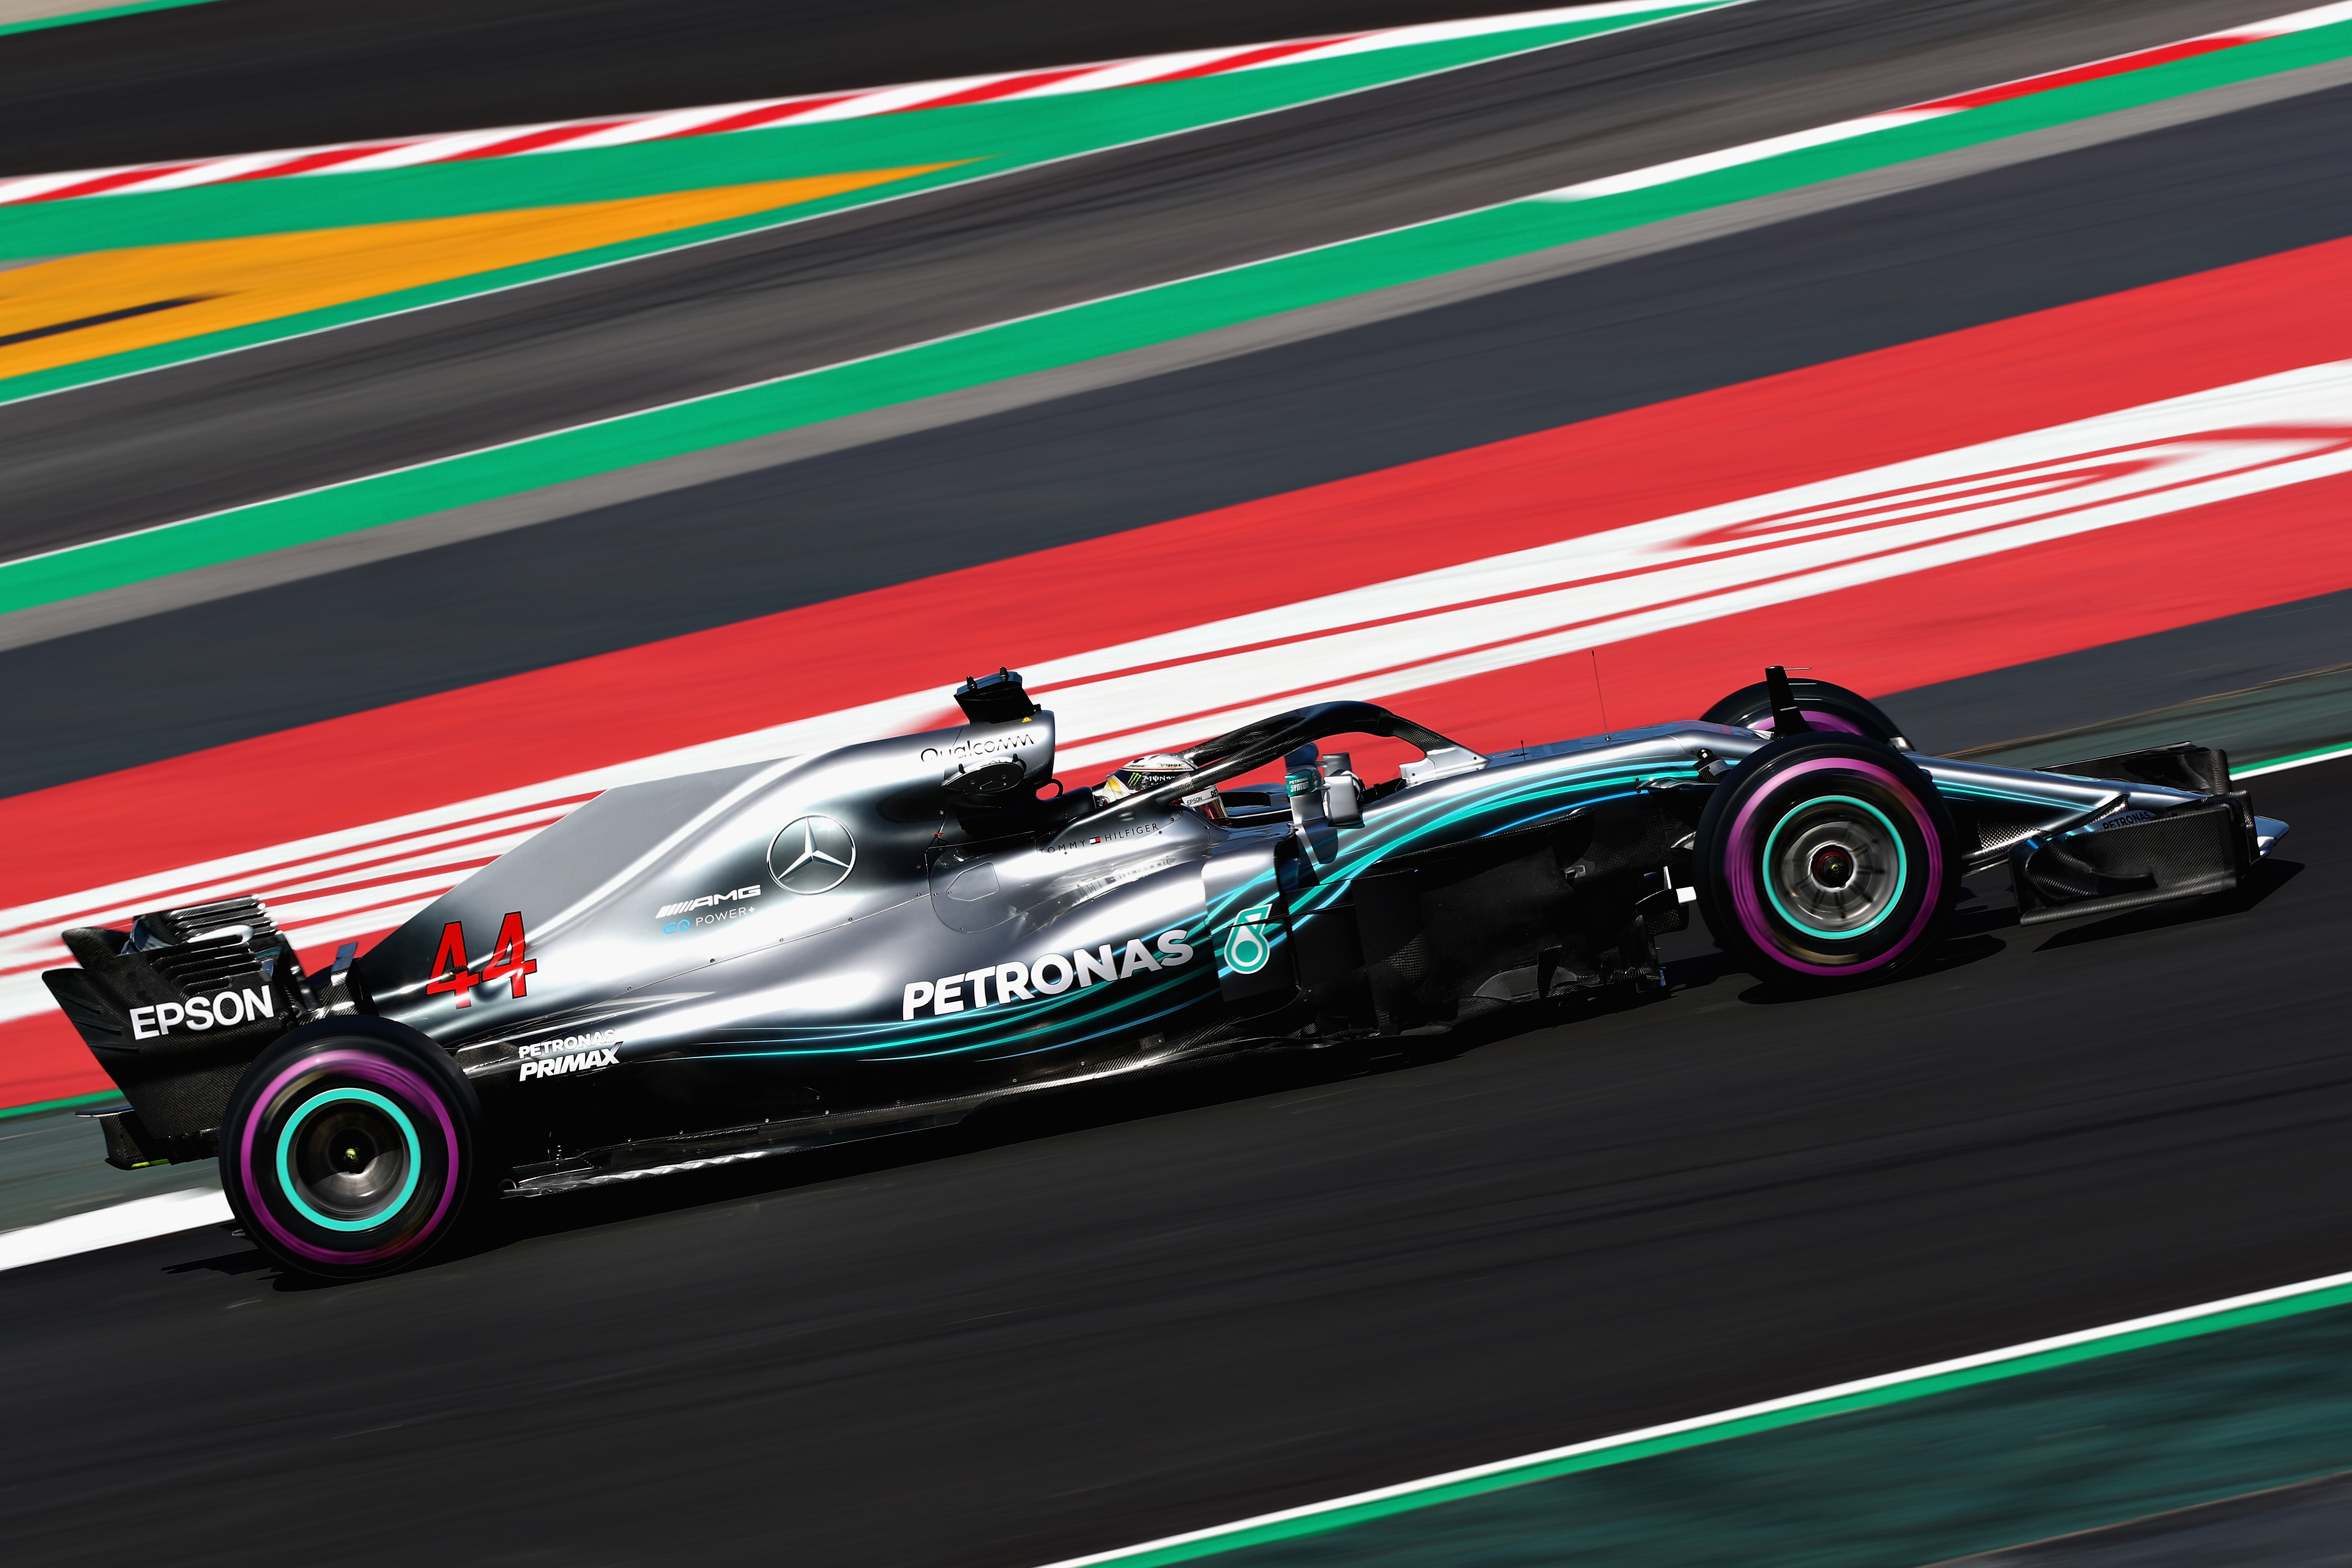 F1 2018 5k, HD Games, 4k Wallpapers, Images, Backgrounds ...